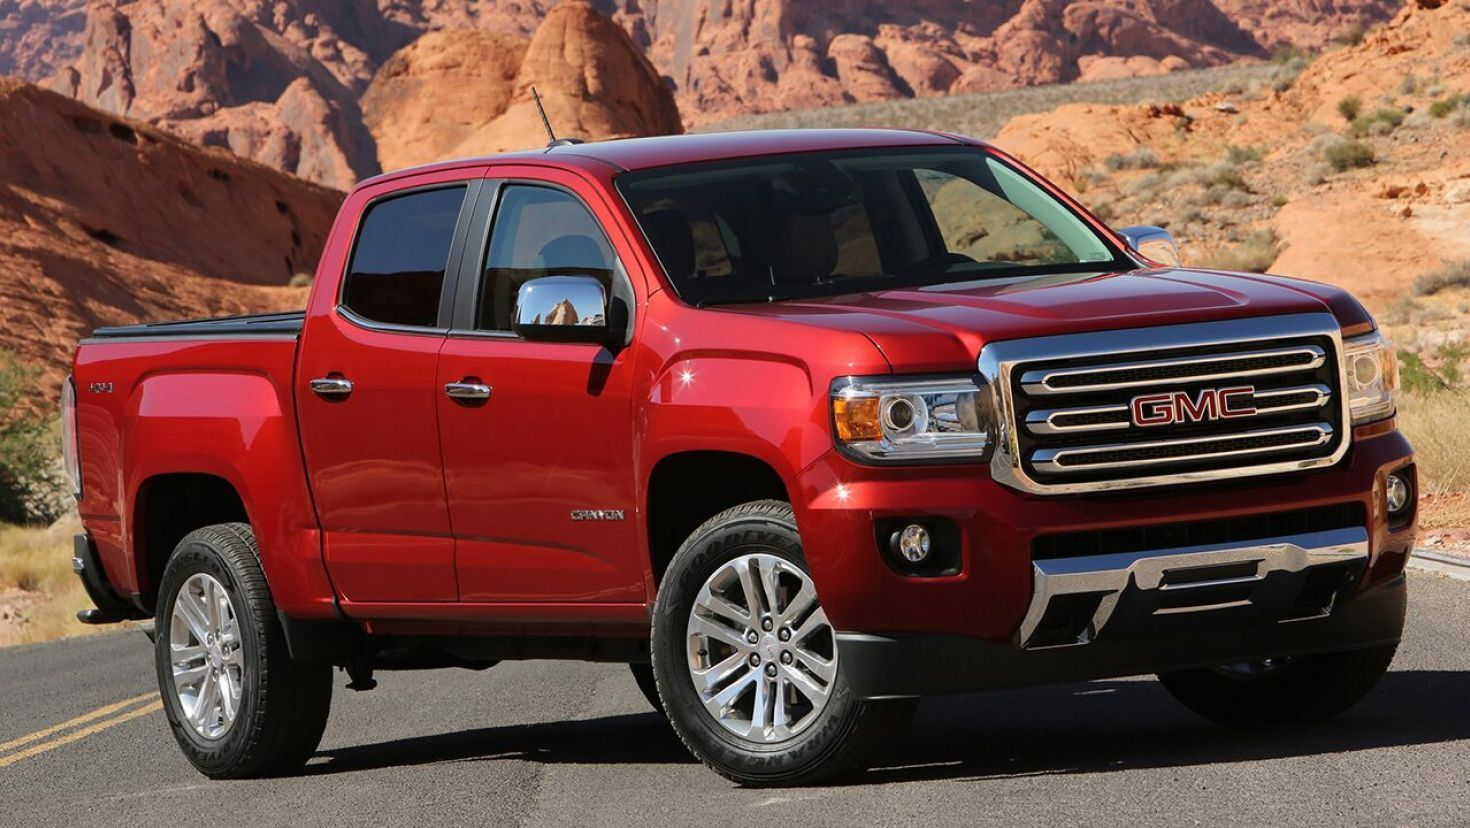 2021 Gmc Canyon Pickup Debuts With New Face In 2020 Gmc Canyon Canyon Diesel Gmc Trucks For Sale